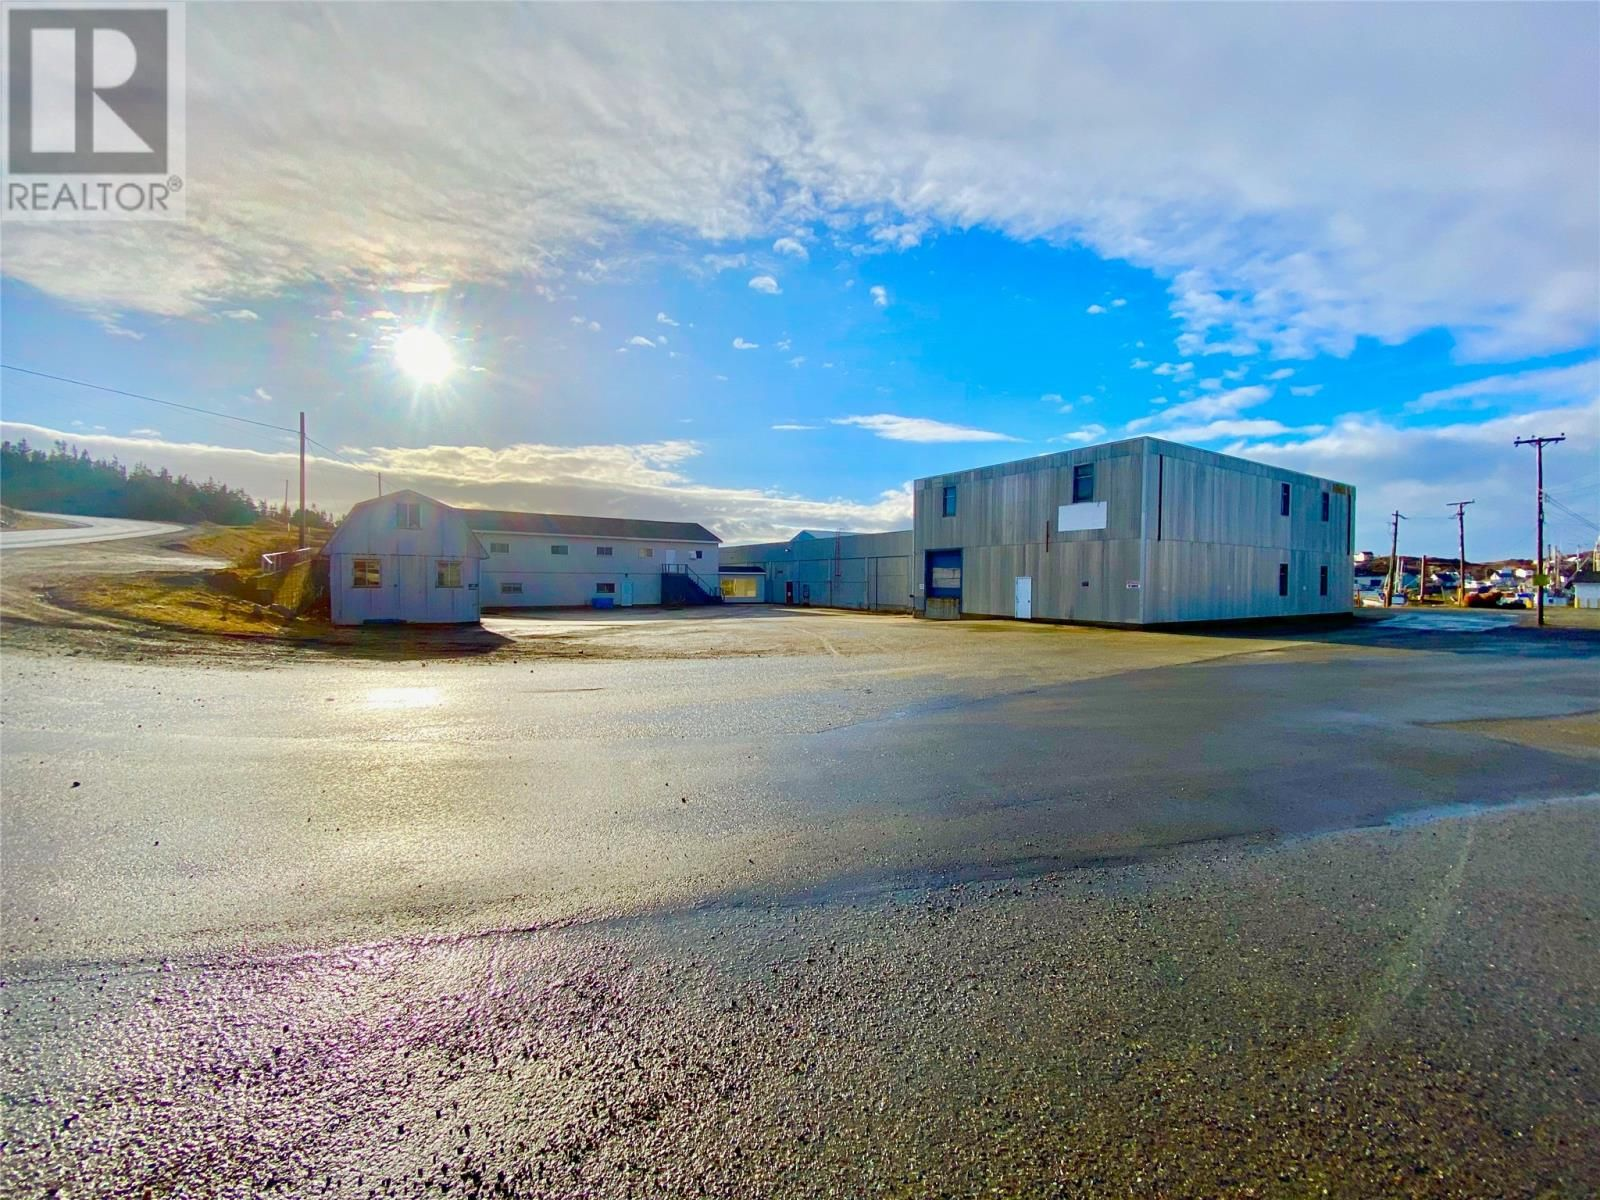 Main Photo: 1-17 Plant Road in Twillingate: Industrial for sale : MLS®# 1225586